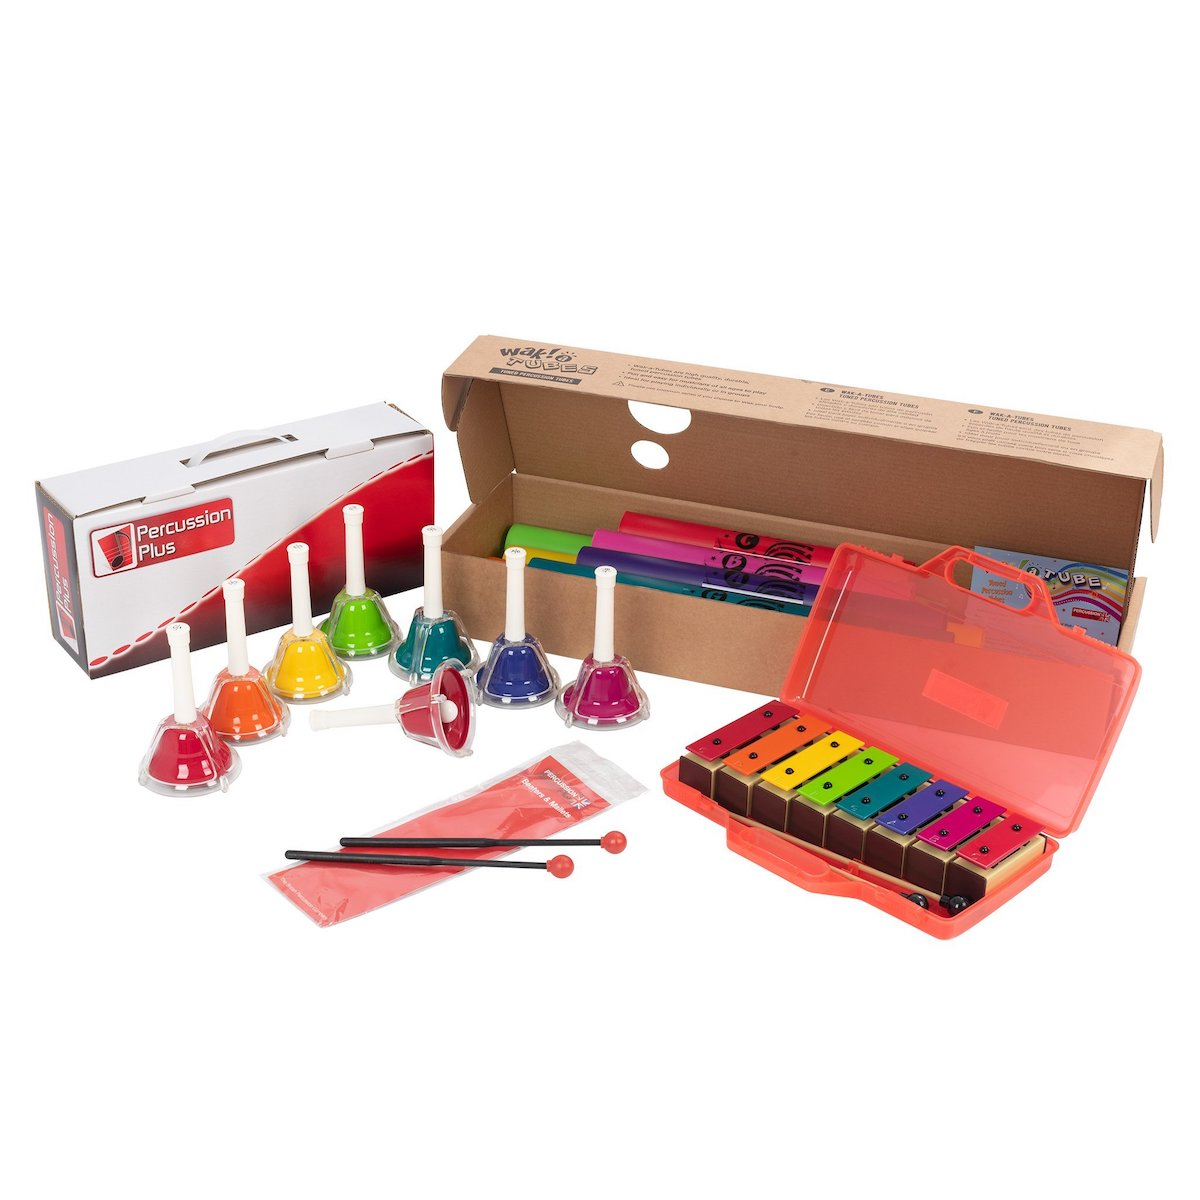 Percussion Plus Colour & Play Percussion Kit